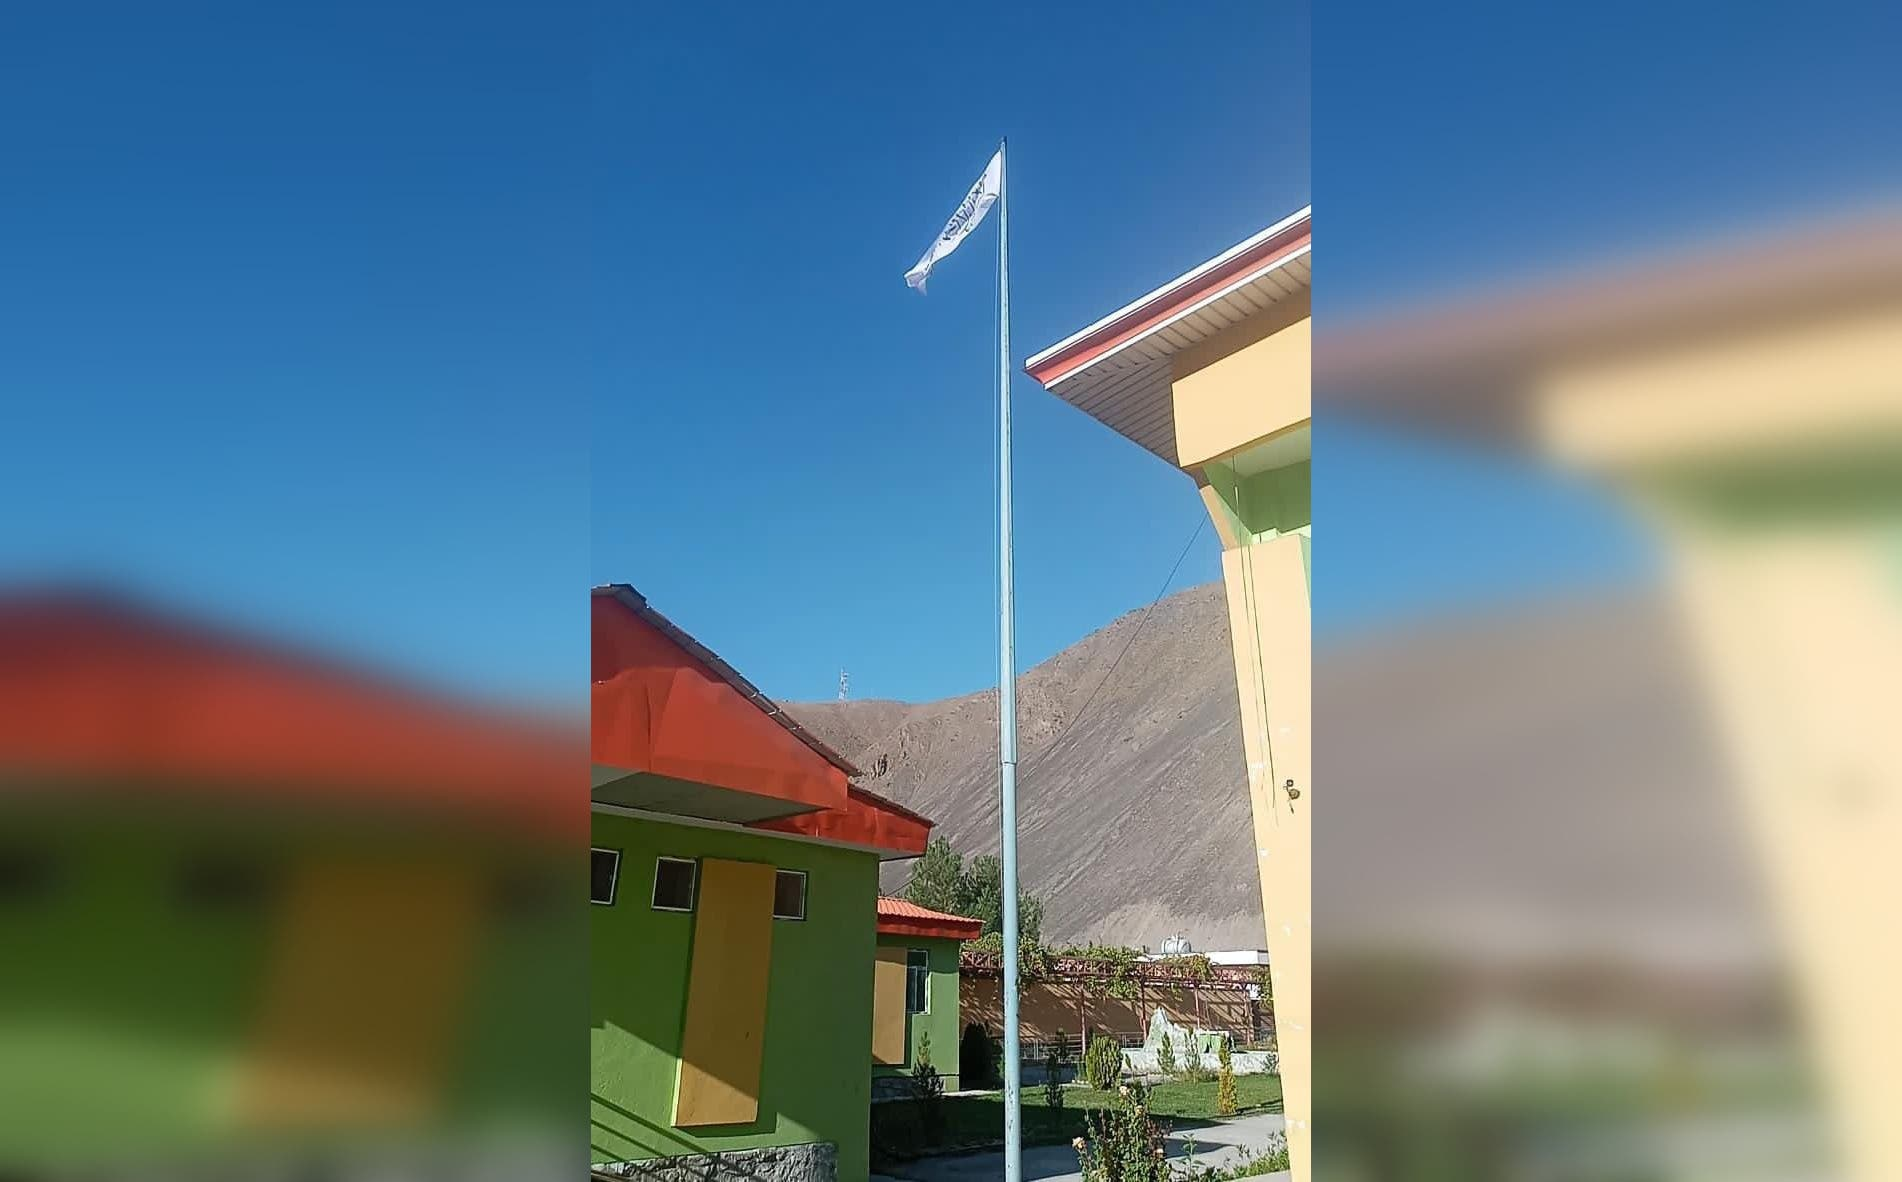 The Taliban flag raised in the center of Panjshir. (Twitter)